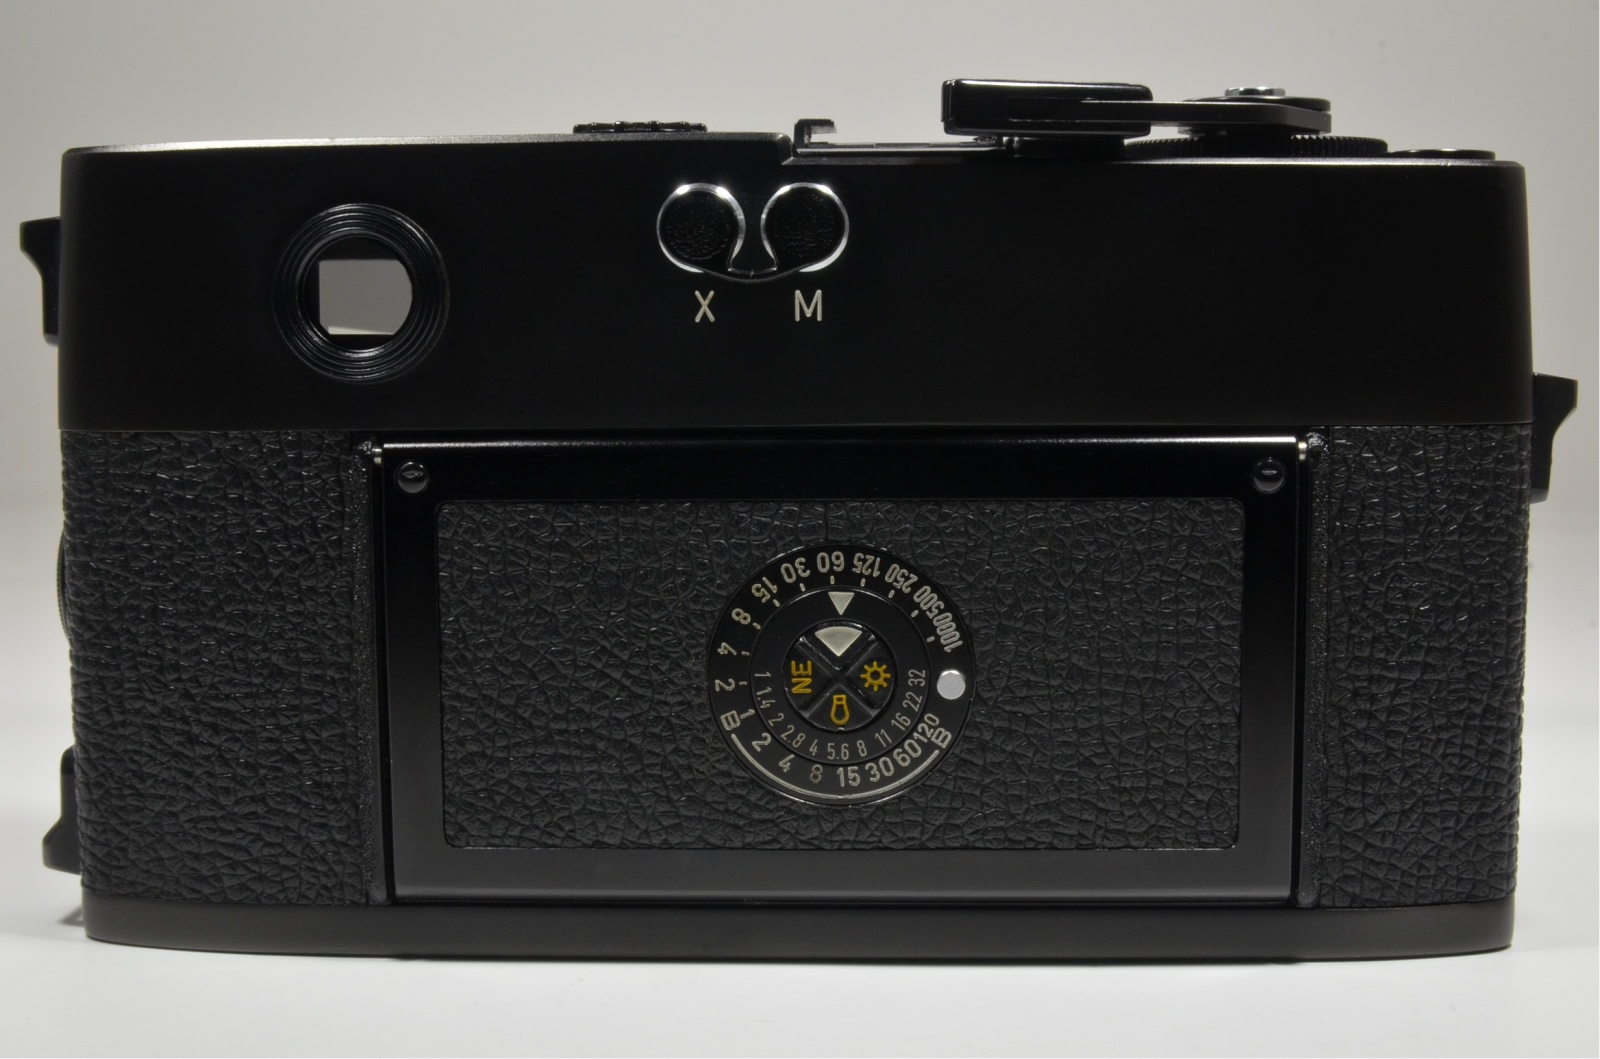 leica m5 black 3 lug year 1973 s/n 1377559 rangefinder camera